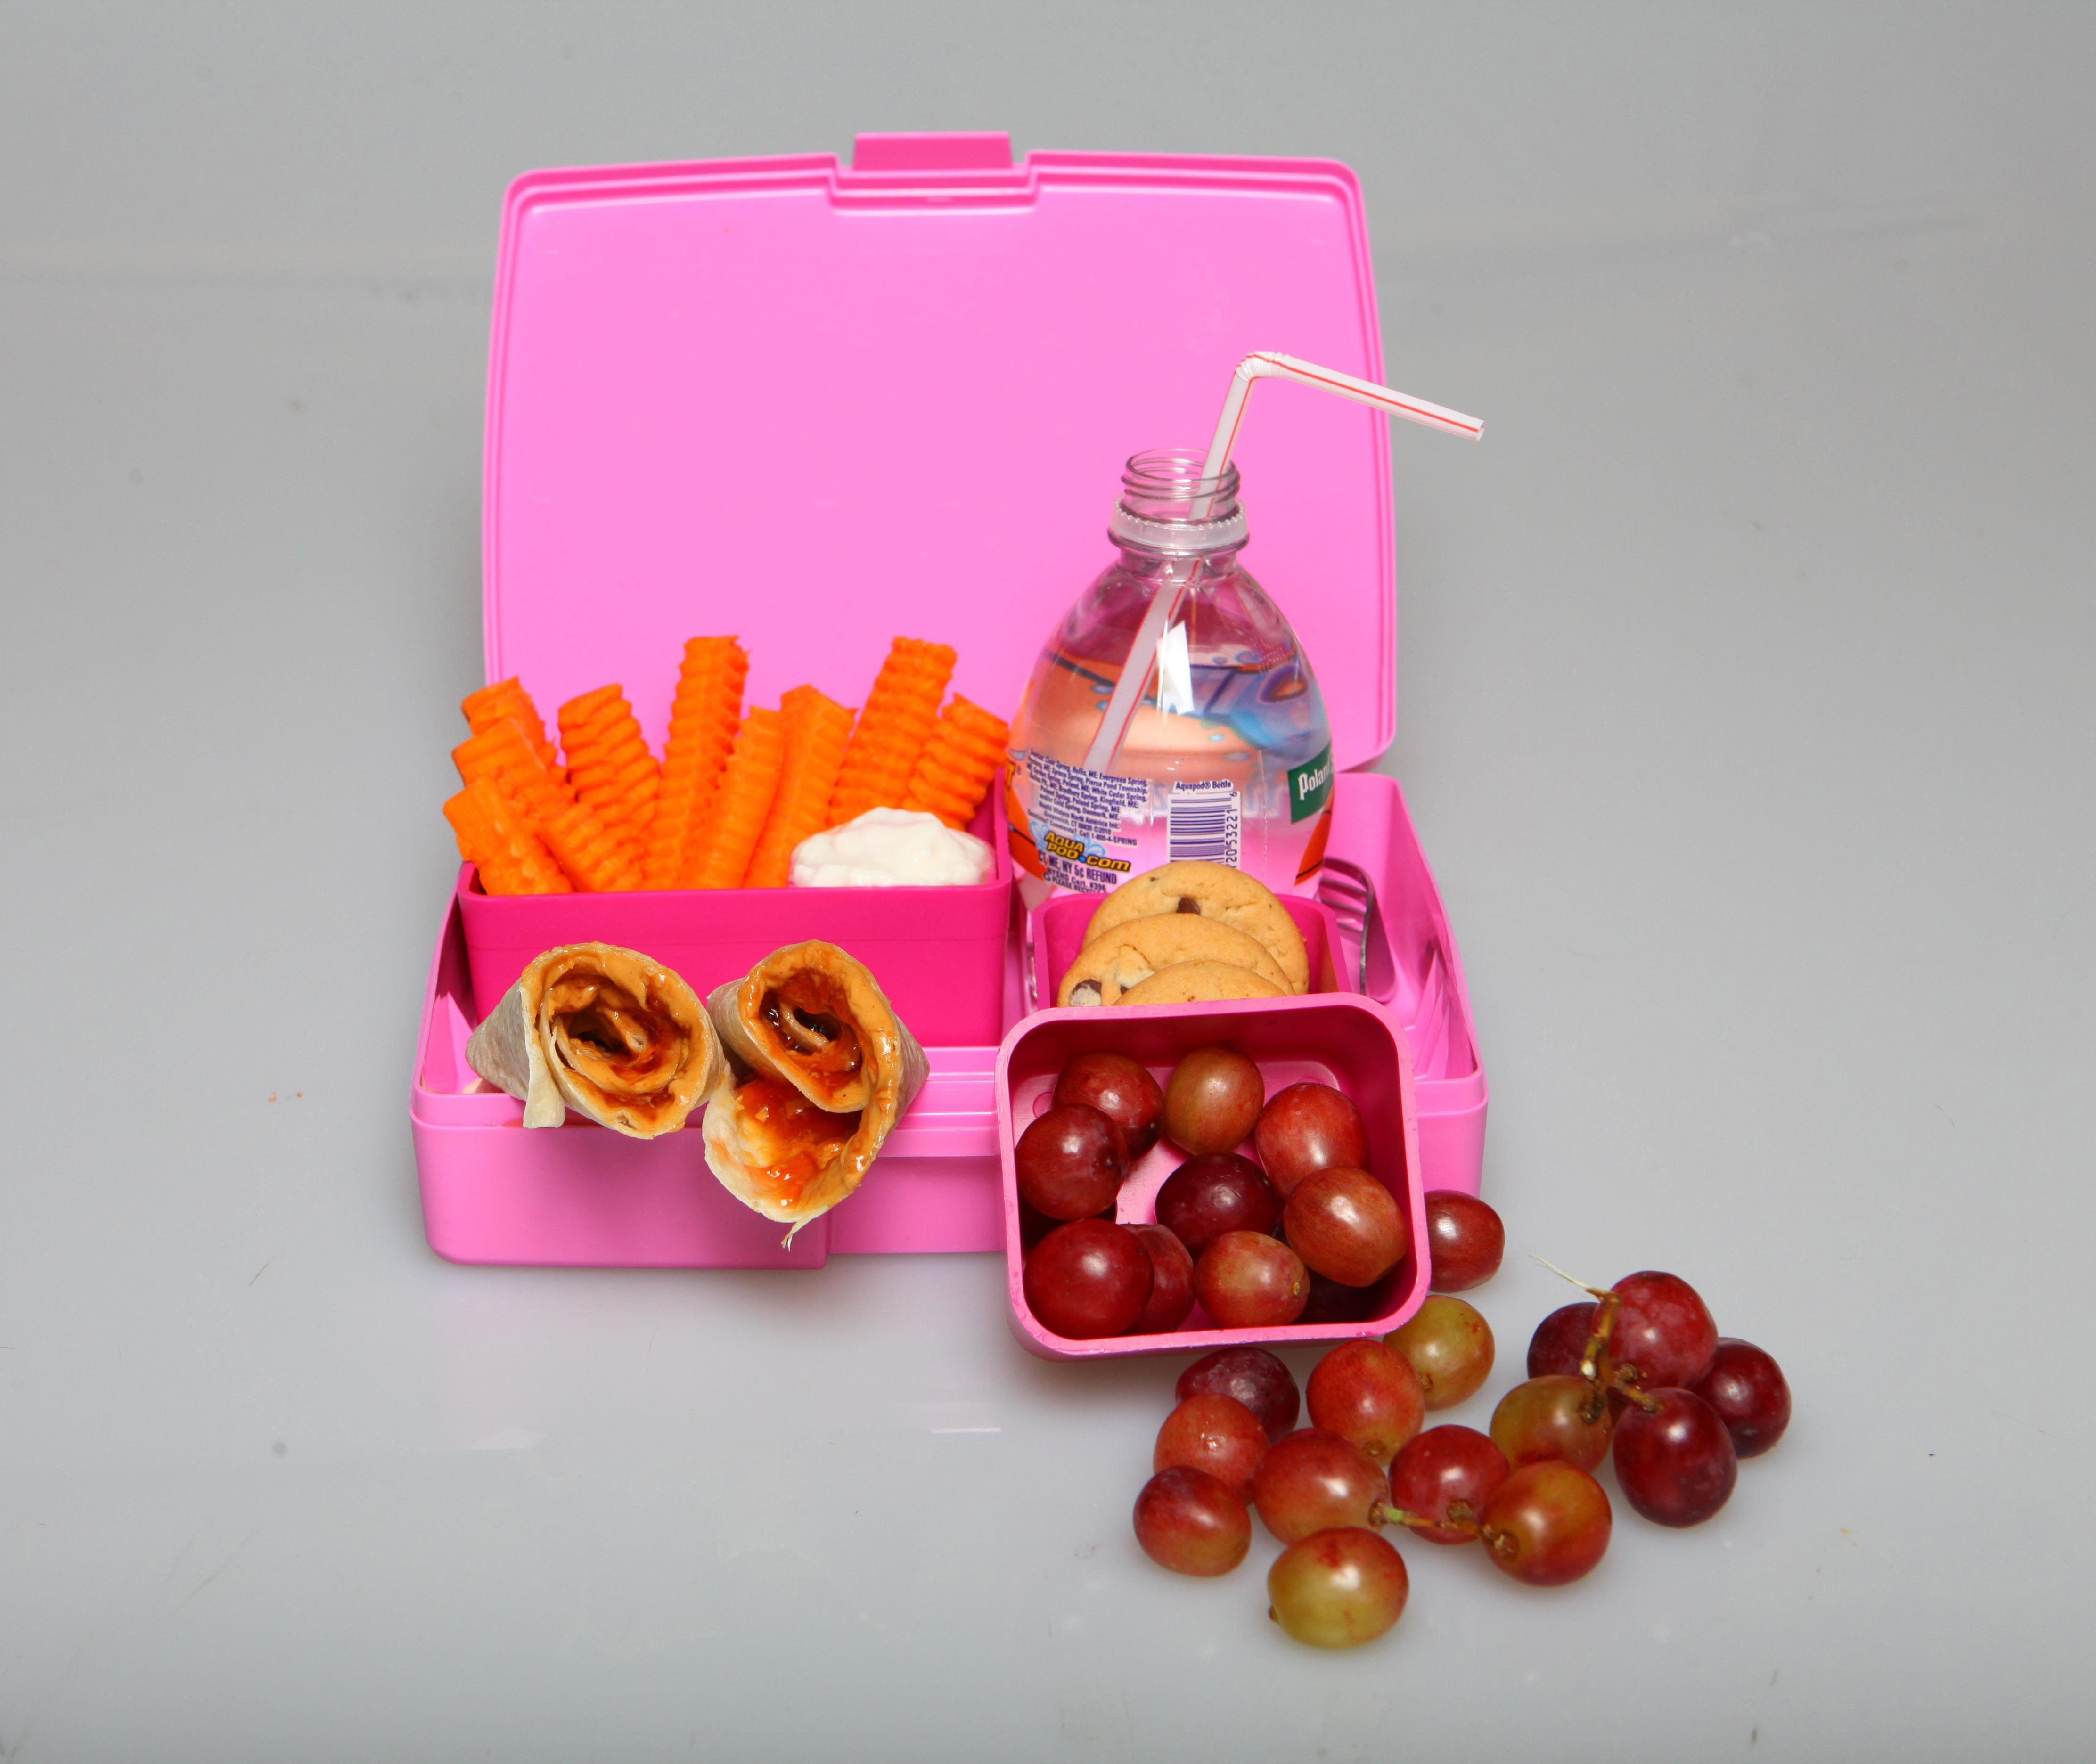 Fruits and vegetables are among the healthful items parents can put in children's lunchboxes.